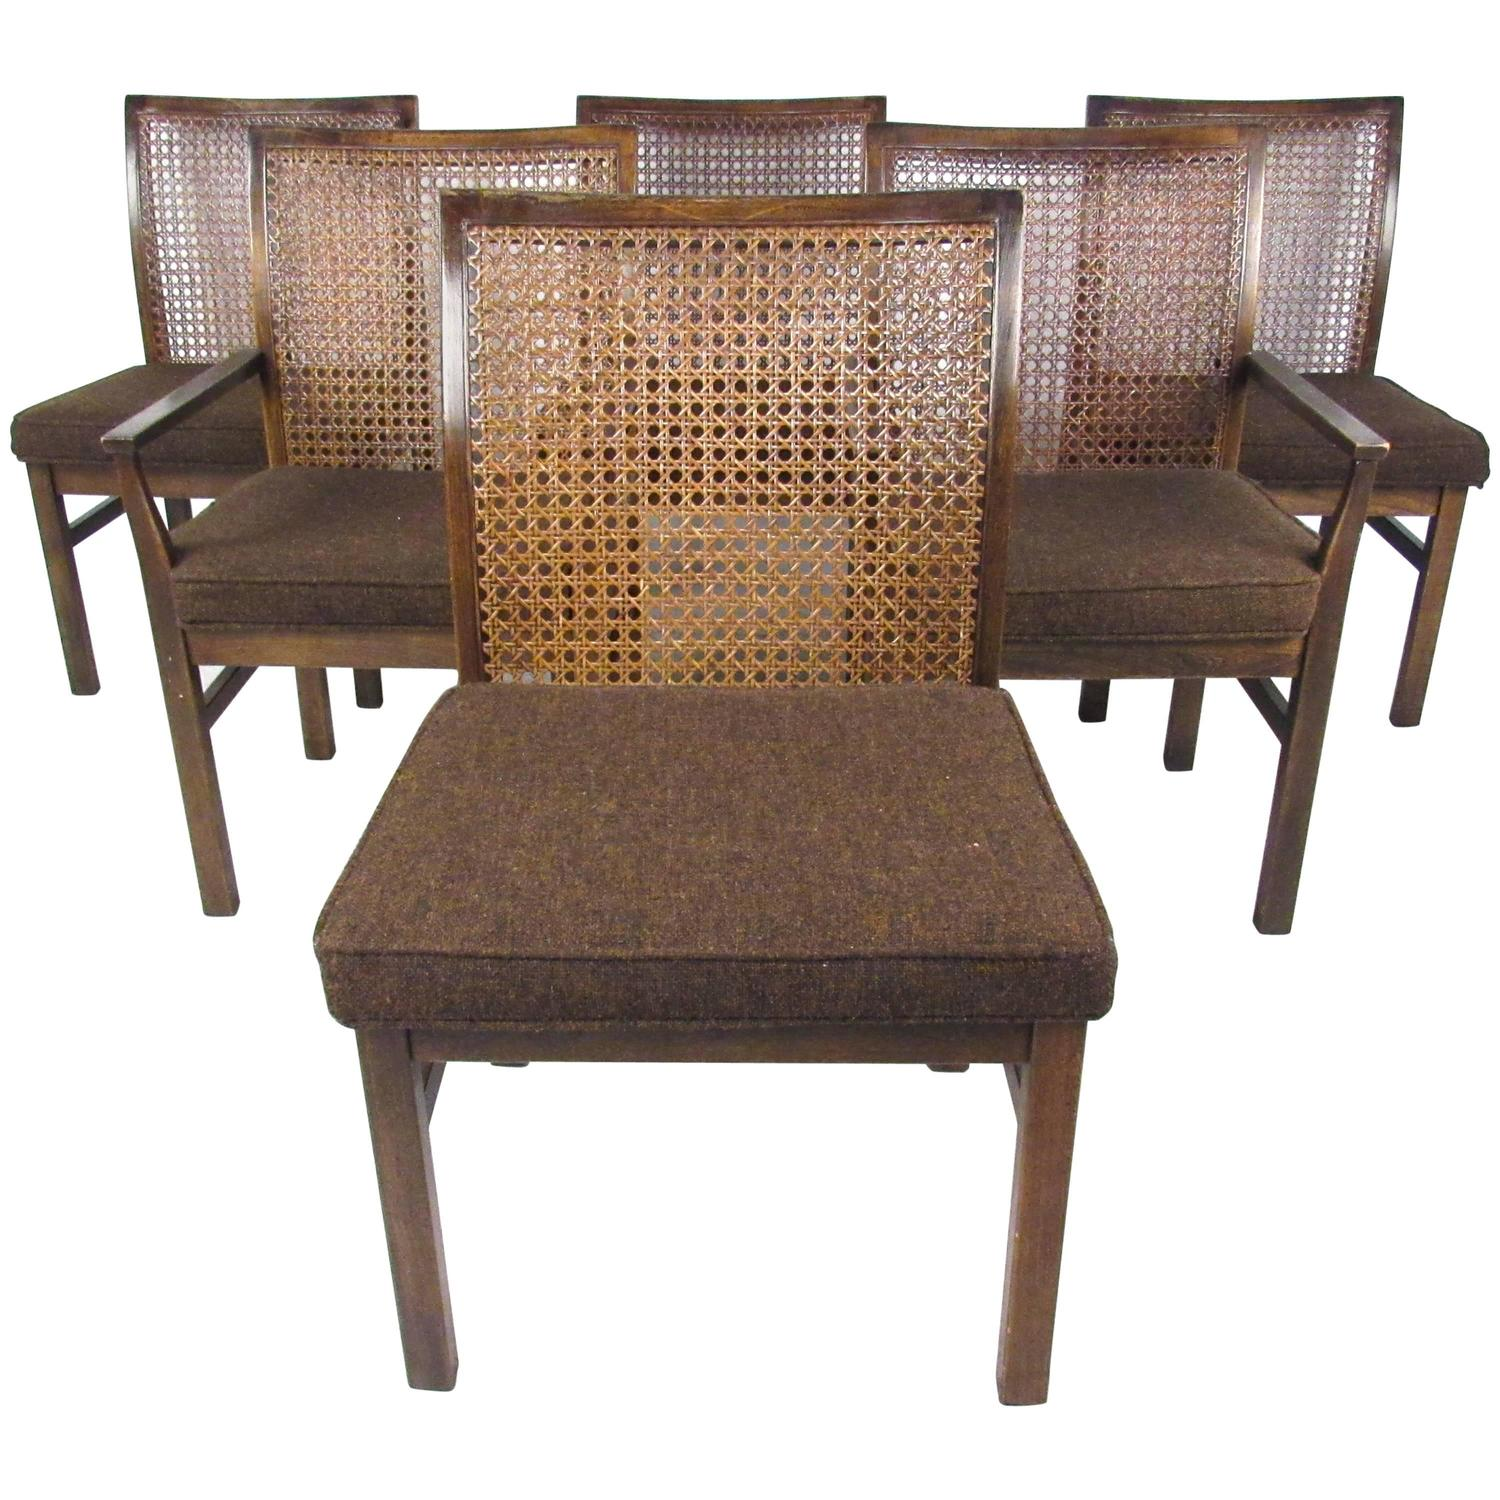 Set of Six Mid Century Modern Cane Back Dining Chairs by Lane For